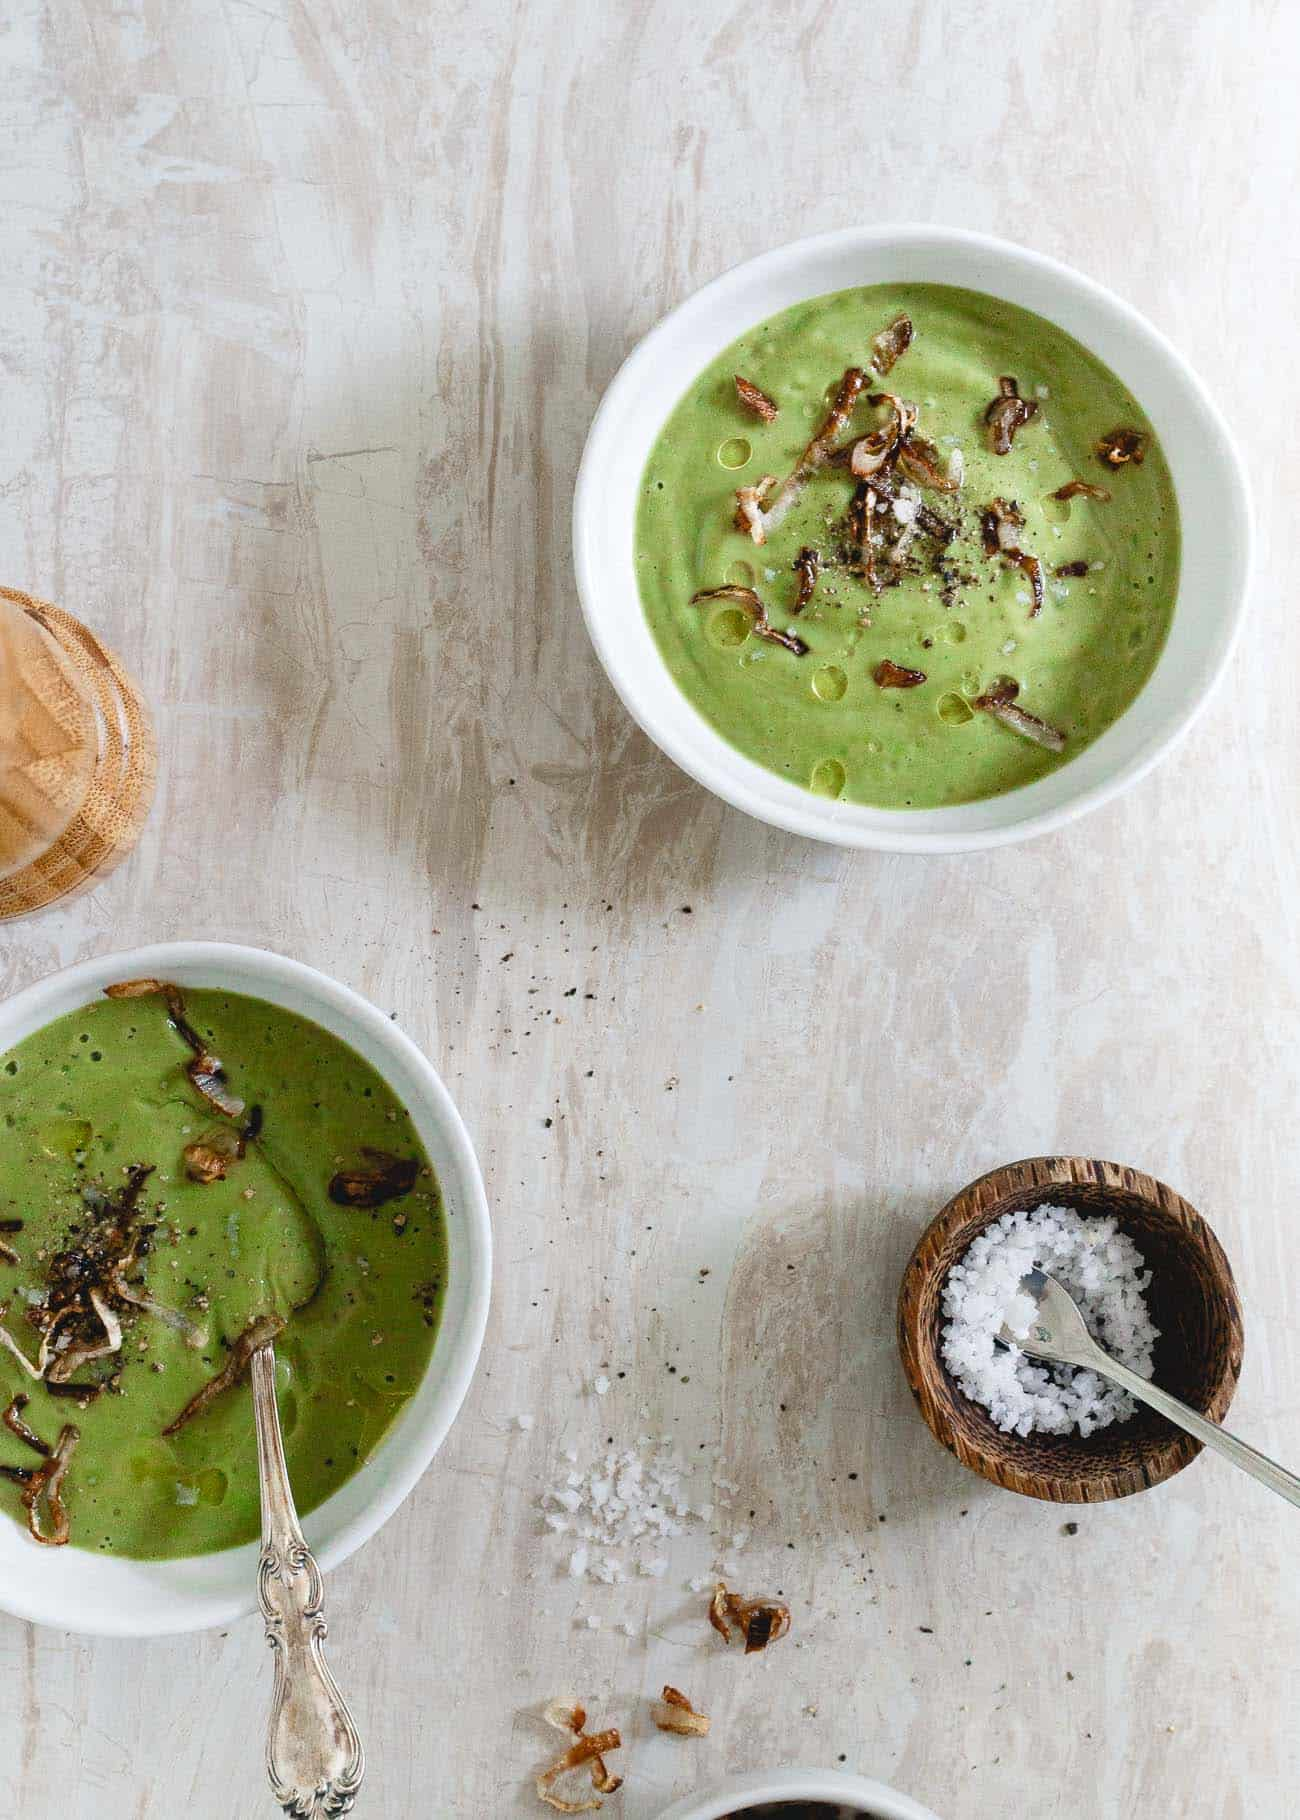 This easy paleo creamy broccoli soup is rich, comforting and topped with crispy shallots. It's also gluten free, vegetarian and vegan.